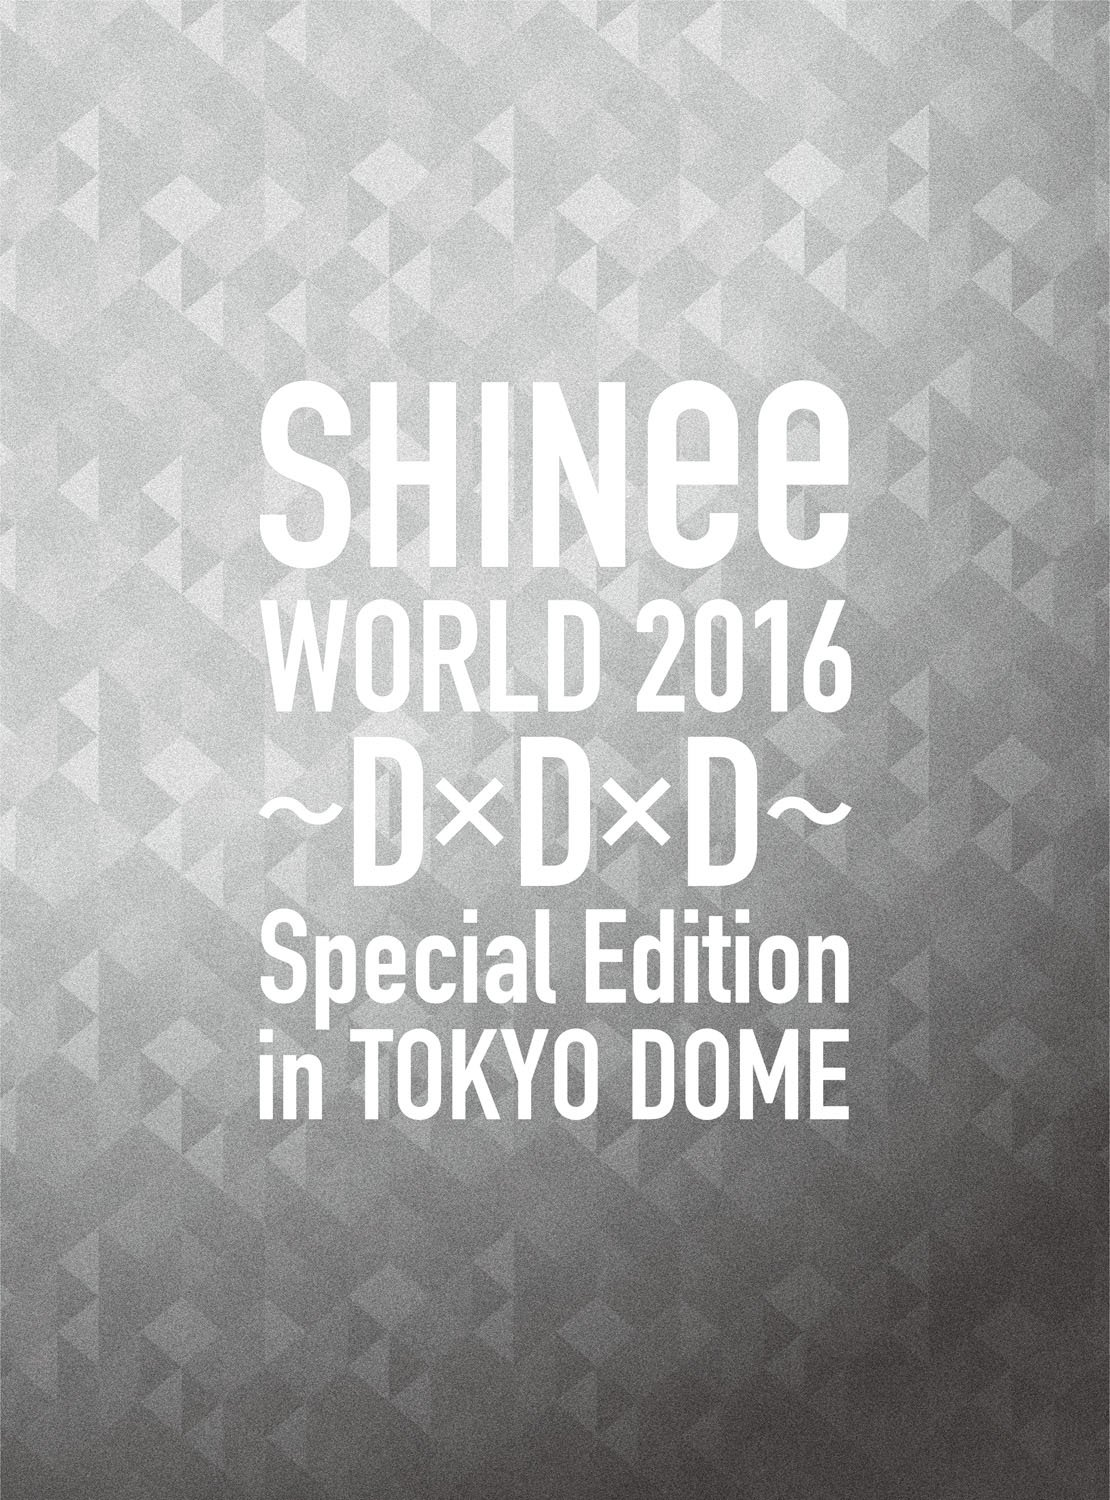 SHINee WORLD 2016 - D x D x D - Special Edition in TOKYO [Limited Edition]